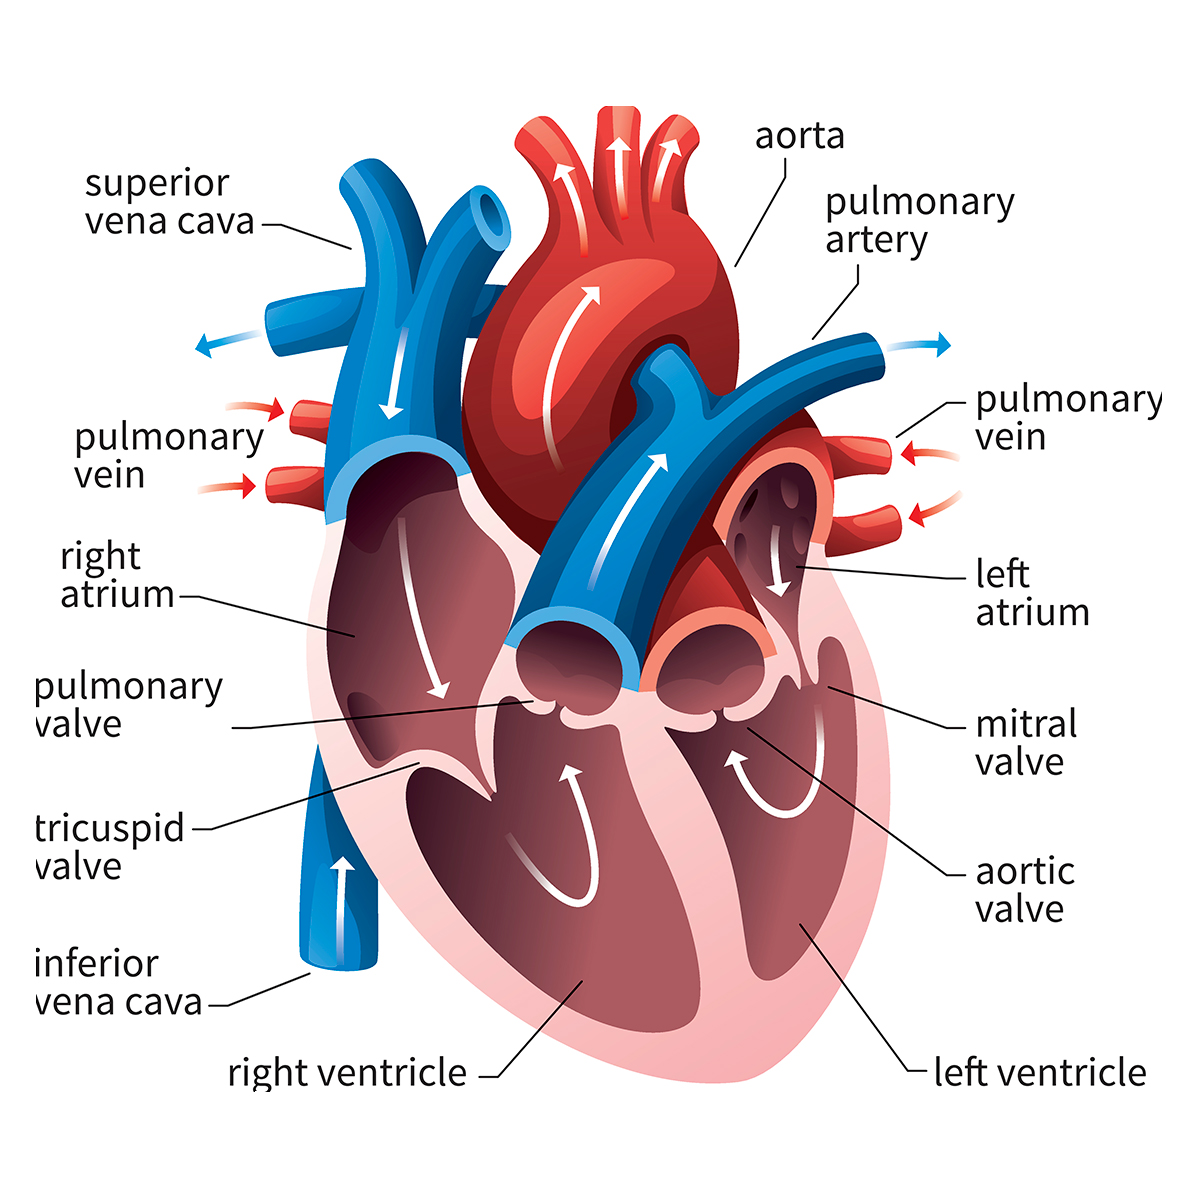 Queensland Cardiovascular Group Anatomy Of The Heart